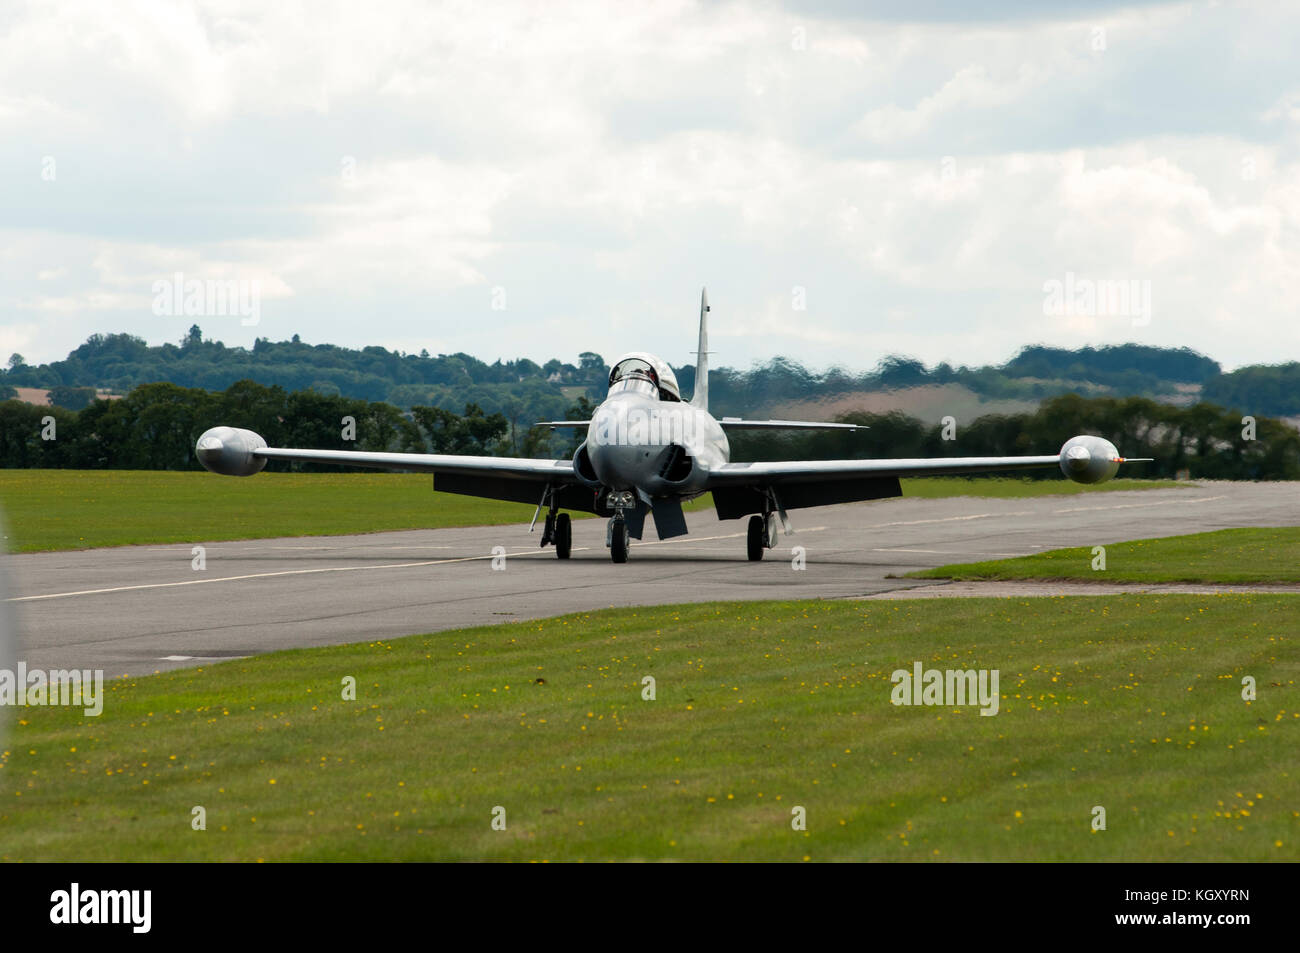 An American 'Coldwar' jet fighter is shown taxiing along a runway on an airfield. - Stock Image